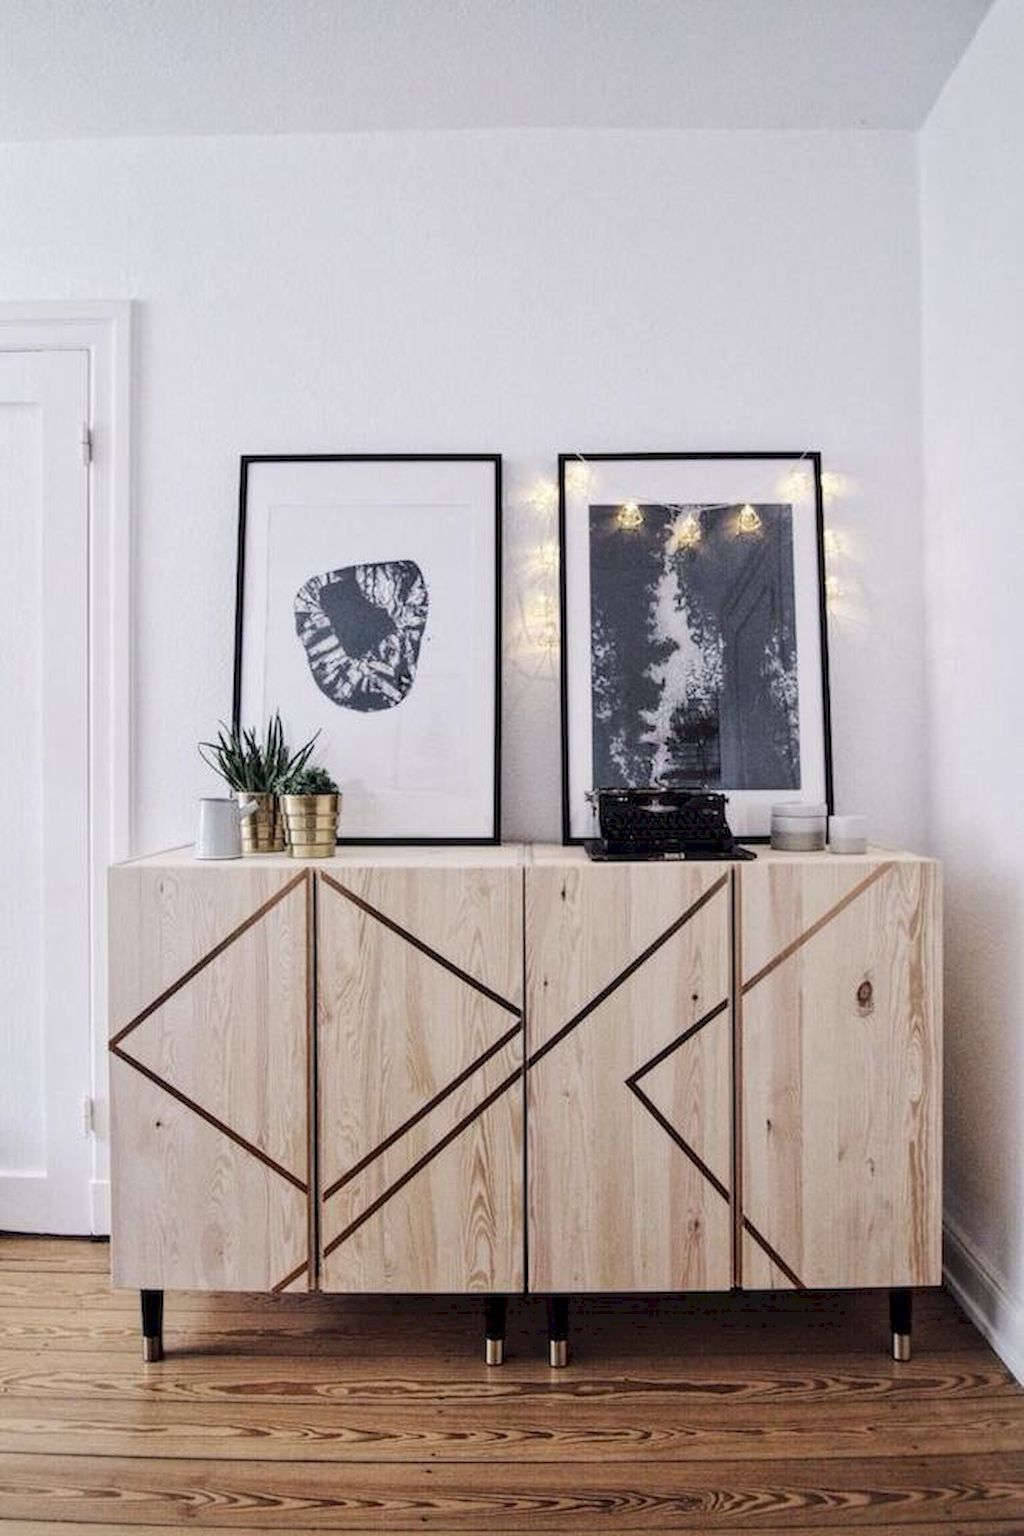 Best Ikea Hacks Ideas For Every Room In Your Apartments 14  # Customizer Meuble Ikea